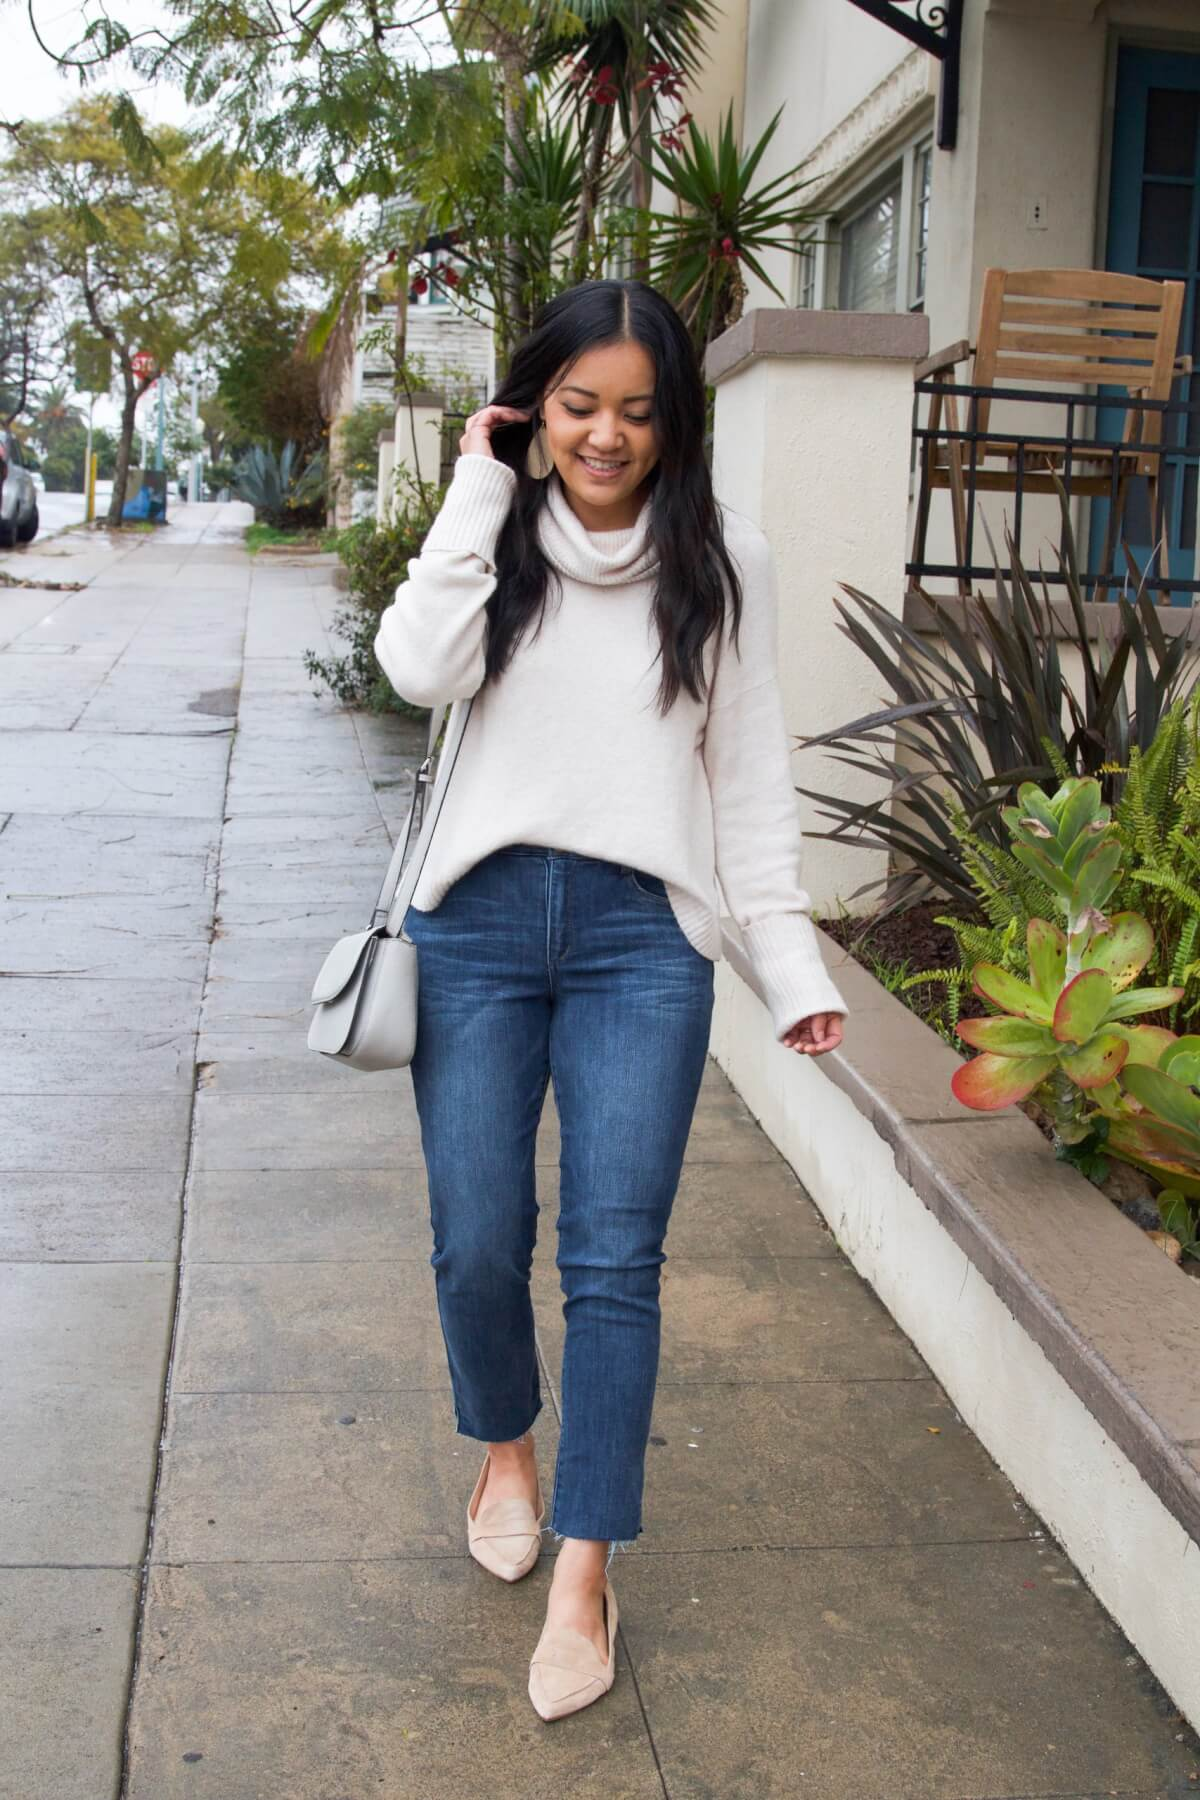 spring outfit: white turtleneck sweater + blue cropped jeans + neutral flats + gray purse + white leather earrings